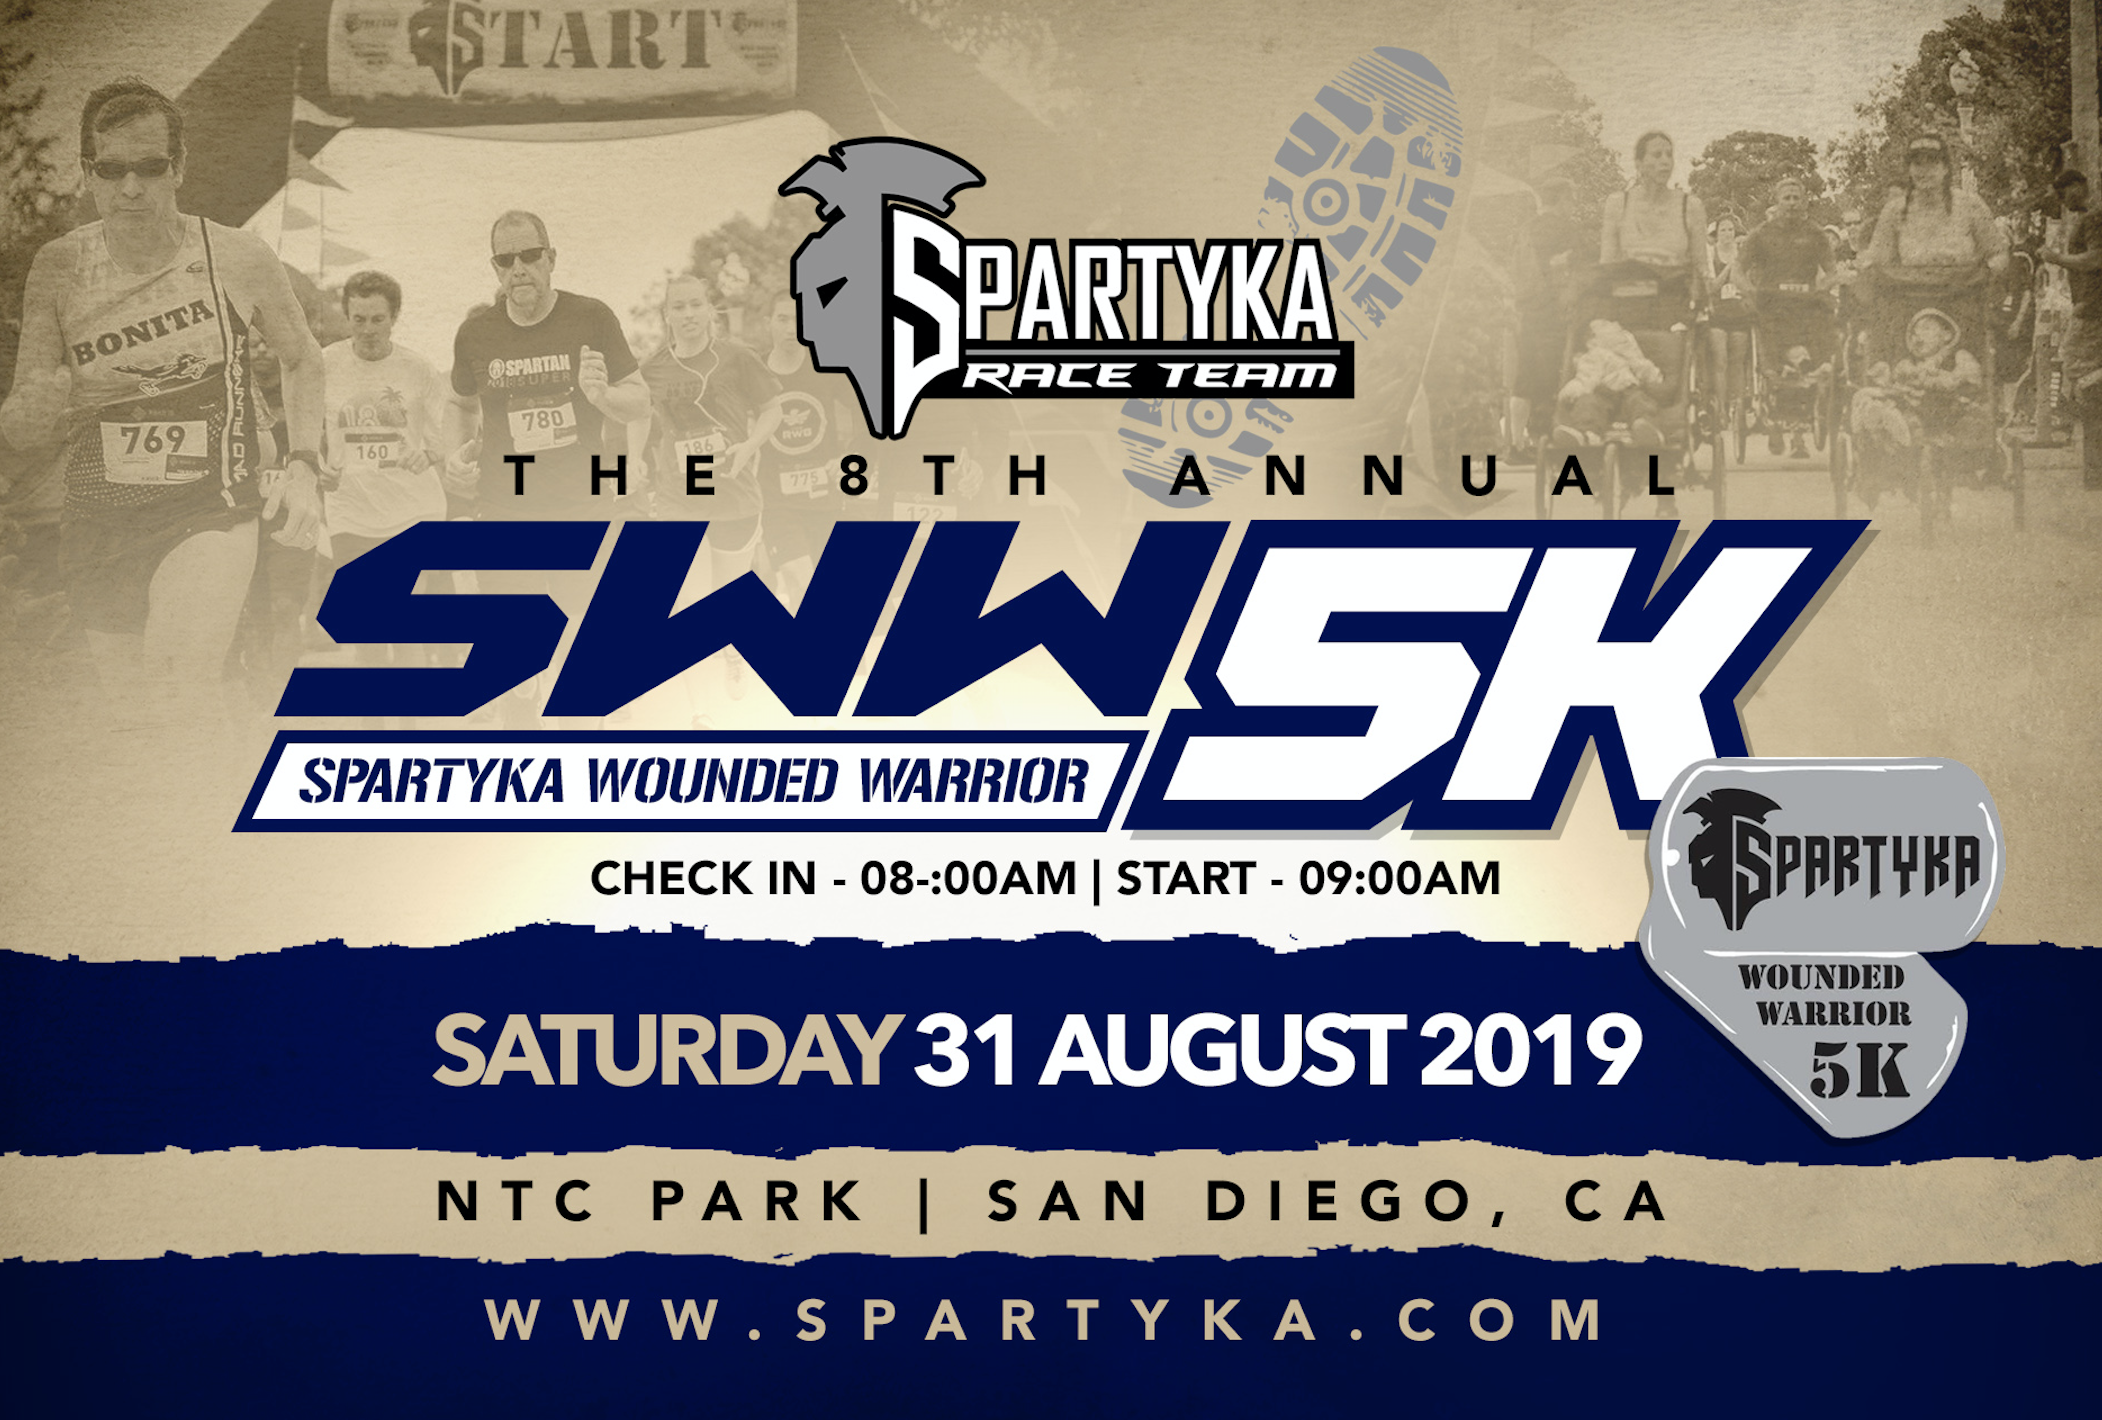 8th Annual Spartyka Wounded Warrior 5K San Diego